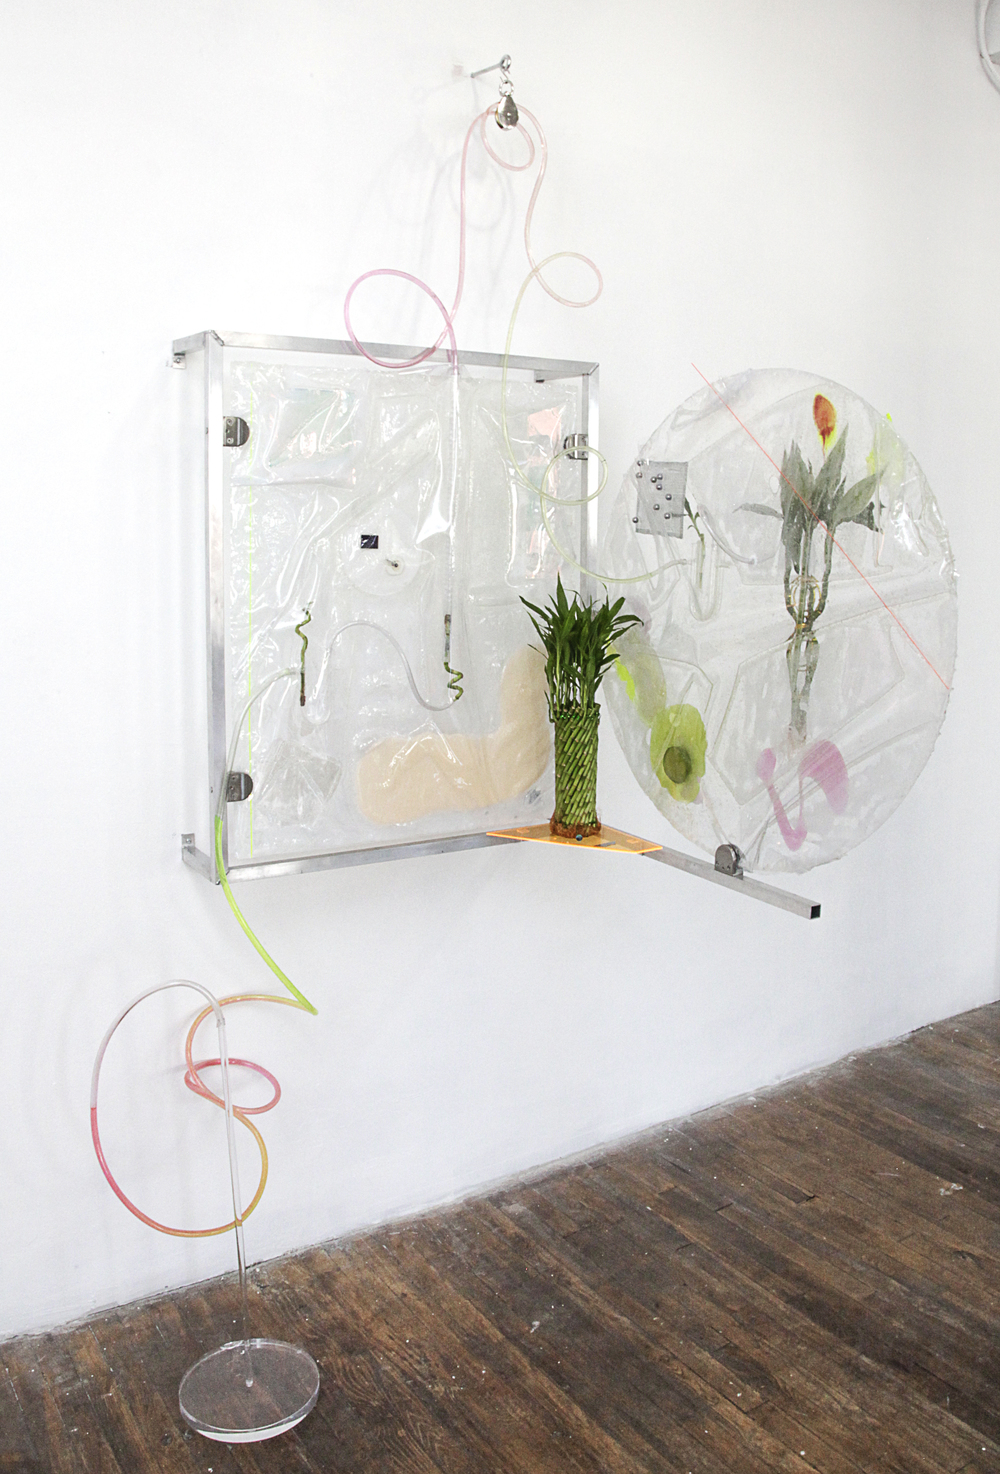 Heidi Norton ,   The Plight (feeding Systems) , 2015, Acrylic, dielectric glass, resin, vinyl, bamboo, tubing, electrodes with thermal switch,  burner screen, pulley, crystal soil water beads, U- shaped draying tubes, aluminum frame, LCD screens, ball bearings